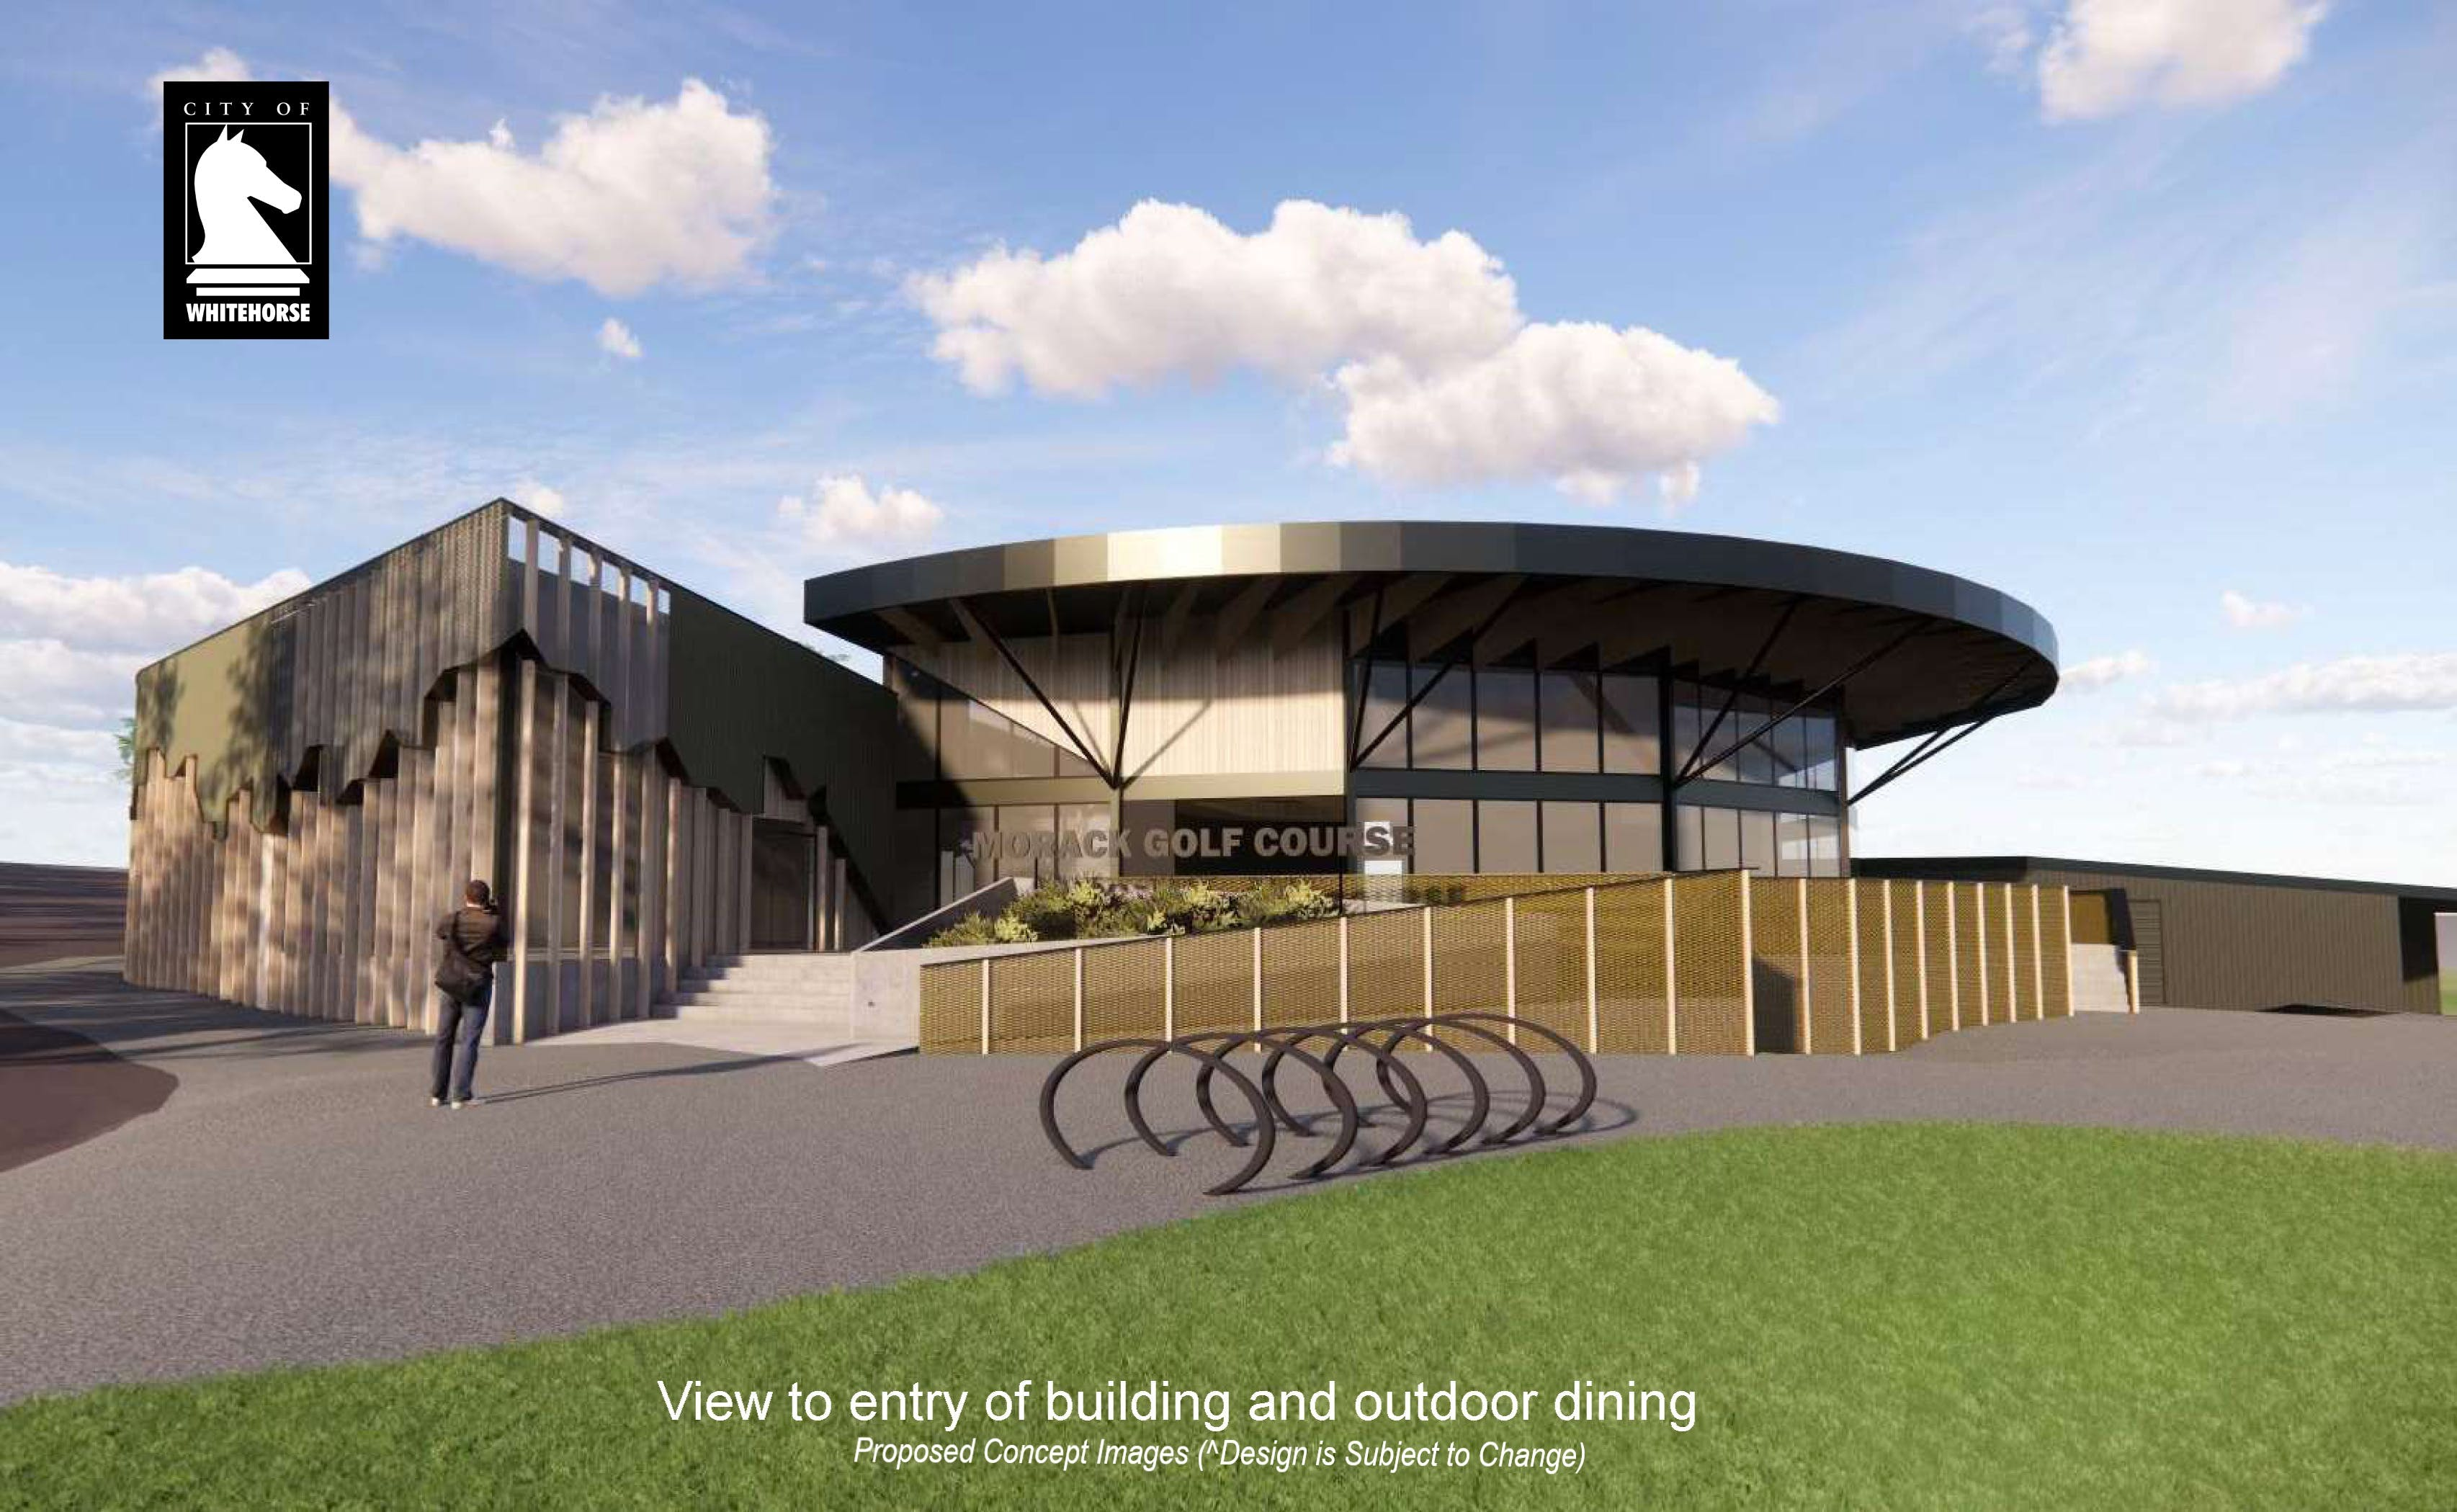 Proposed view to entry of building and outdoor dining